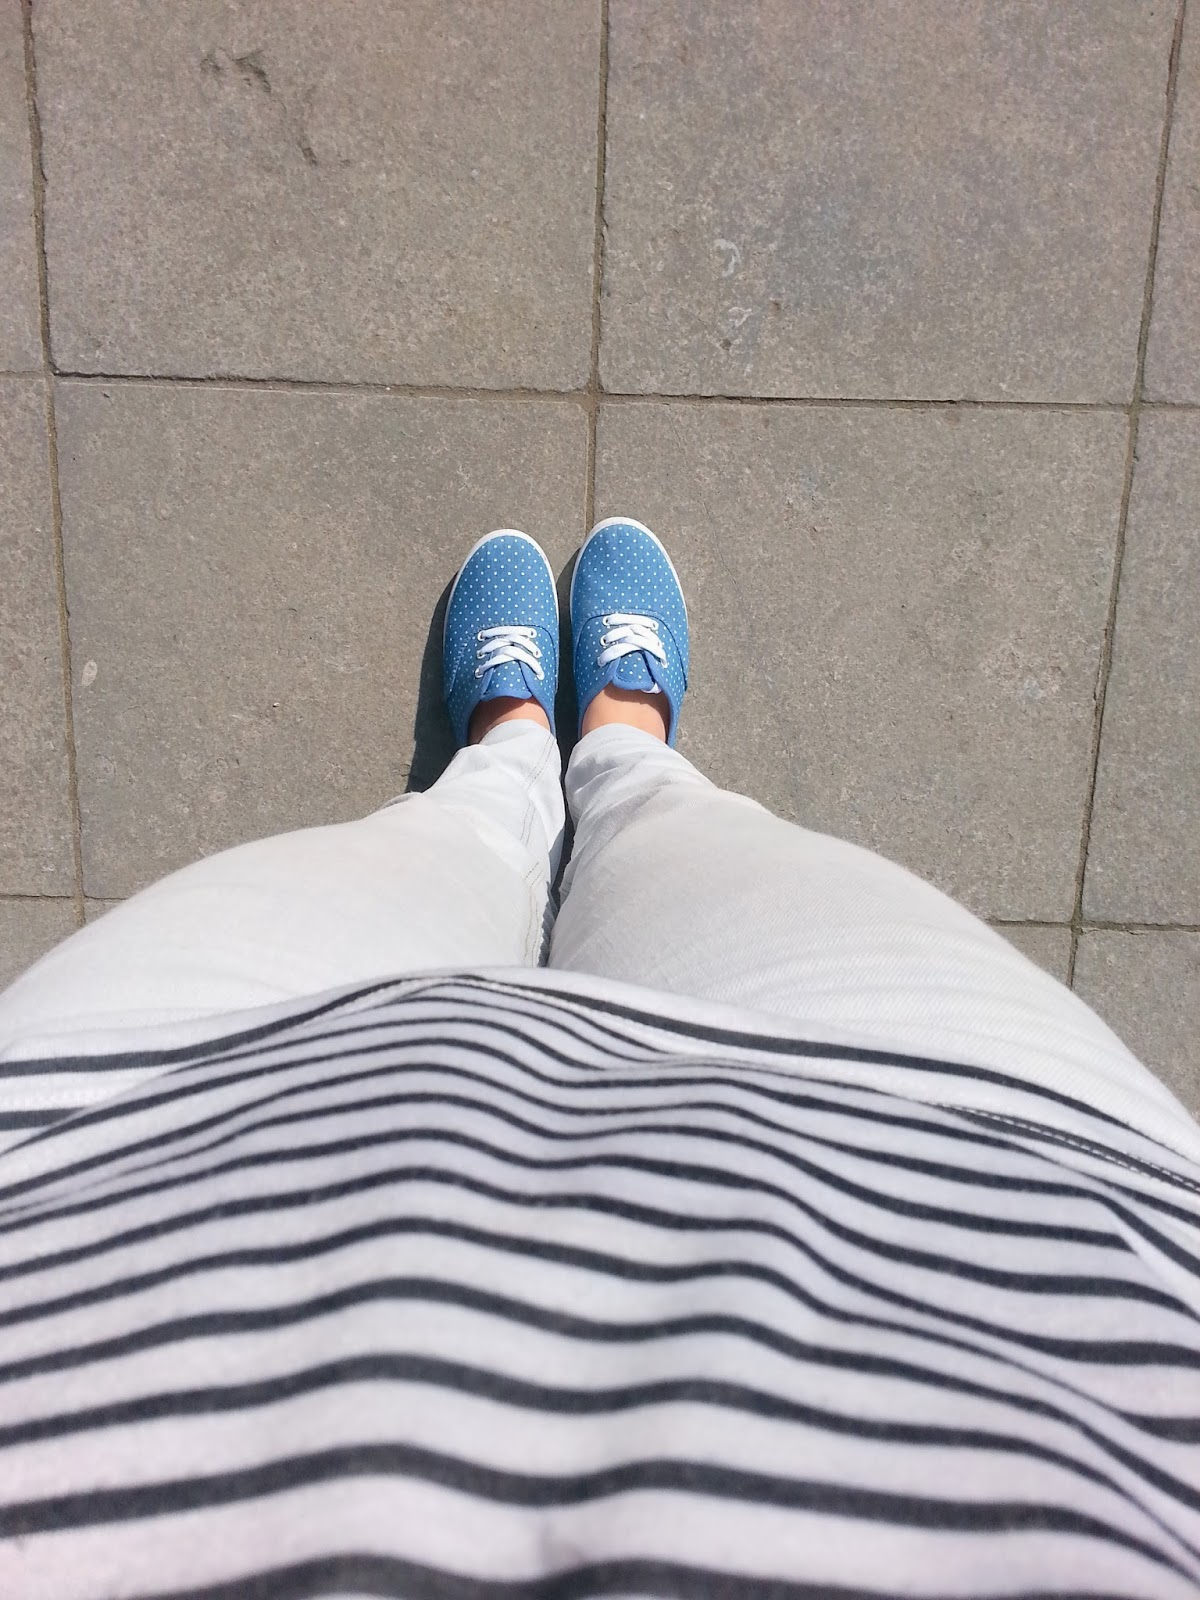 Clothes & Dreams: OOTD: The return of the sun + my haircut: From where I stand